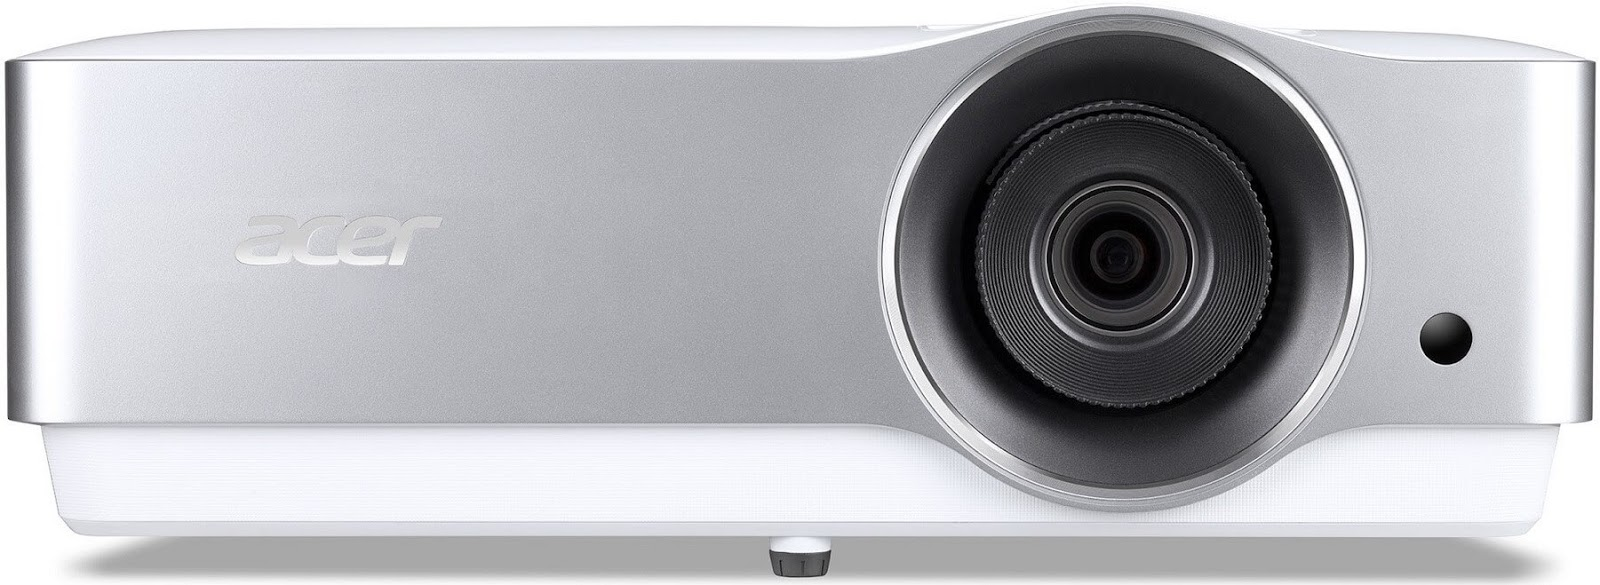 Acer Launches New 4K UHD Projectors for Home Cinema and Large Venues